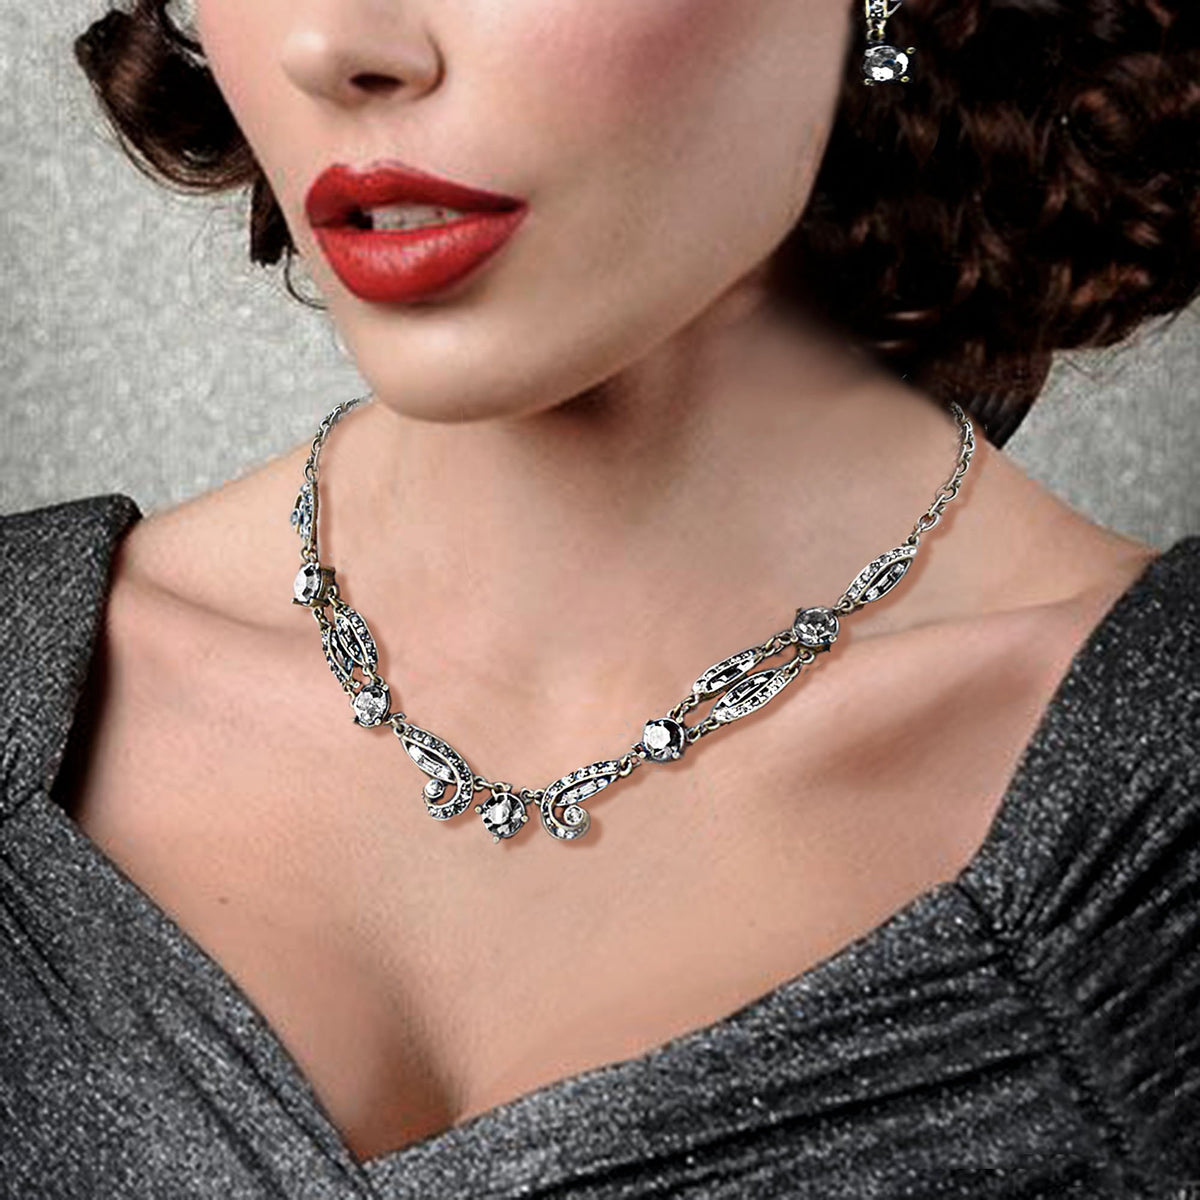 Art Deco Sapphire Crystal Necklace N1616 - Sweet Romance Wholesale